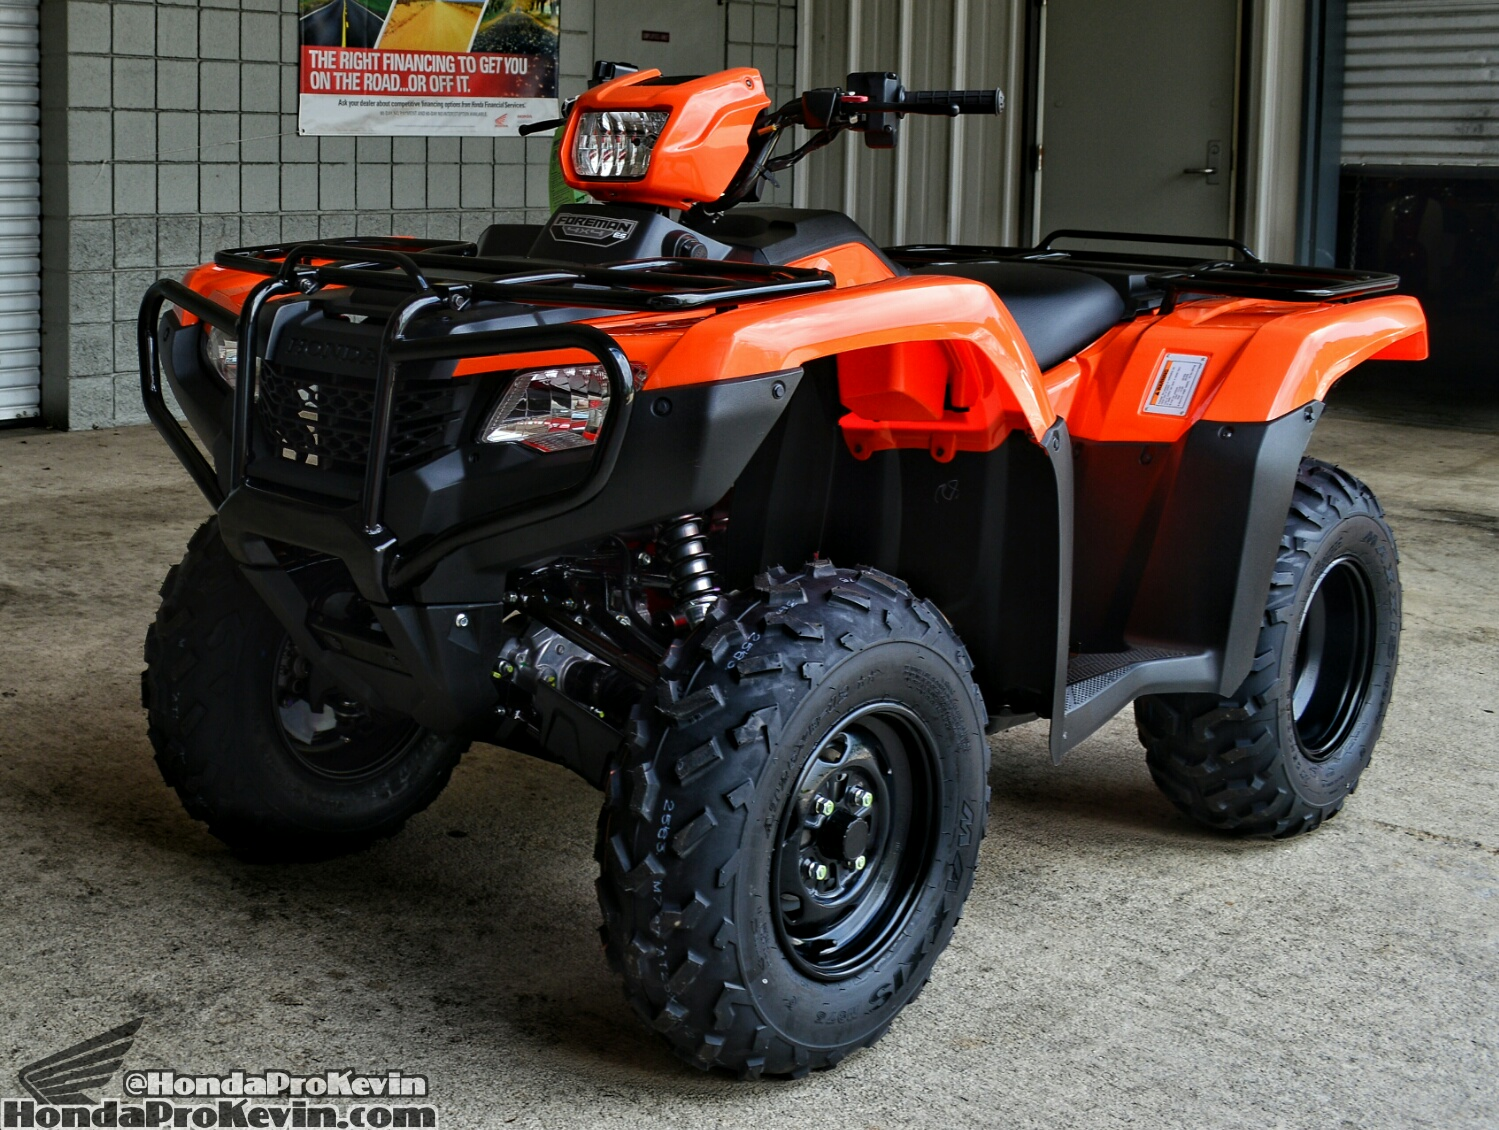 2017 Honda Foreman 500 Es Eps ATV Review Specs Trx500fe2 4x4. 2017 Honda Foreman Es 500 Overview Of Features. Honda. Es Parts Foreman Honda Diagramfrontaxel At Scoala.co